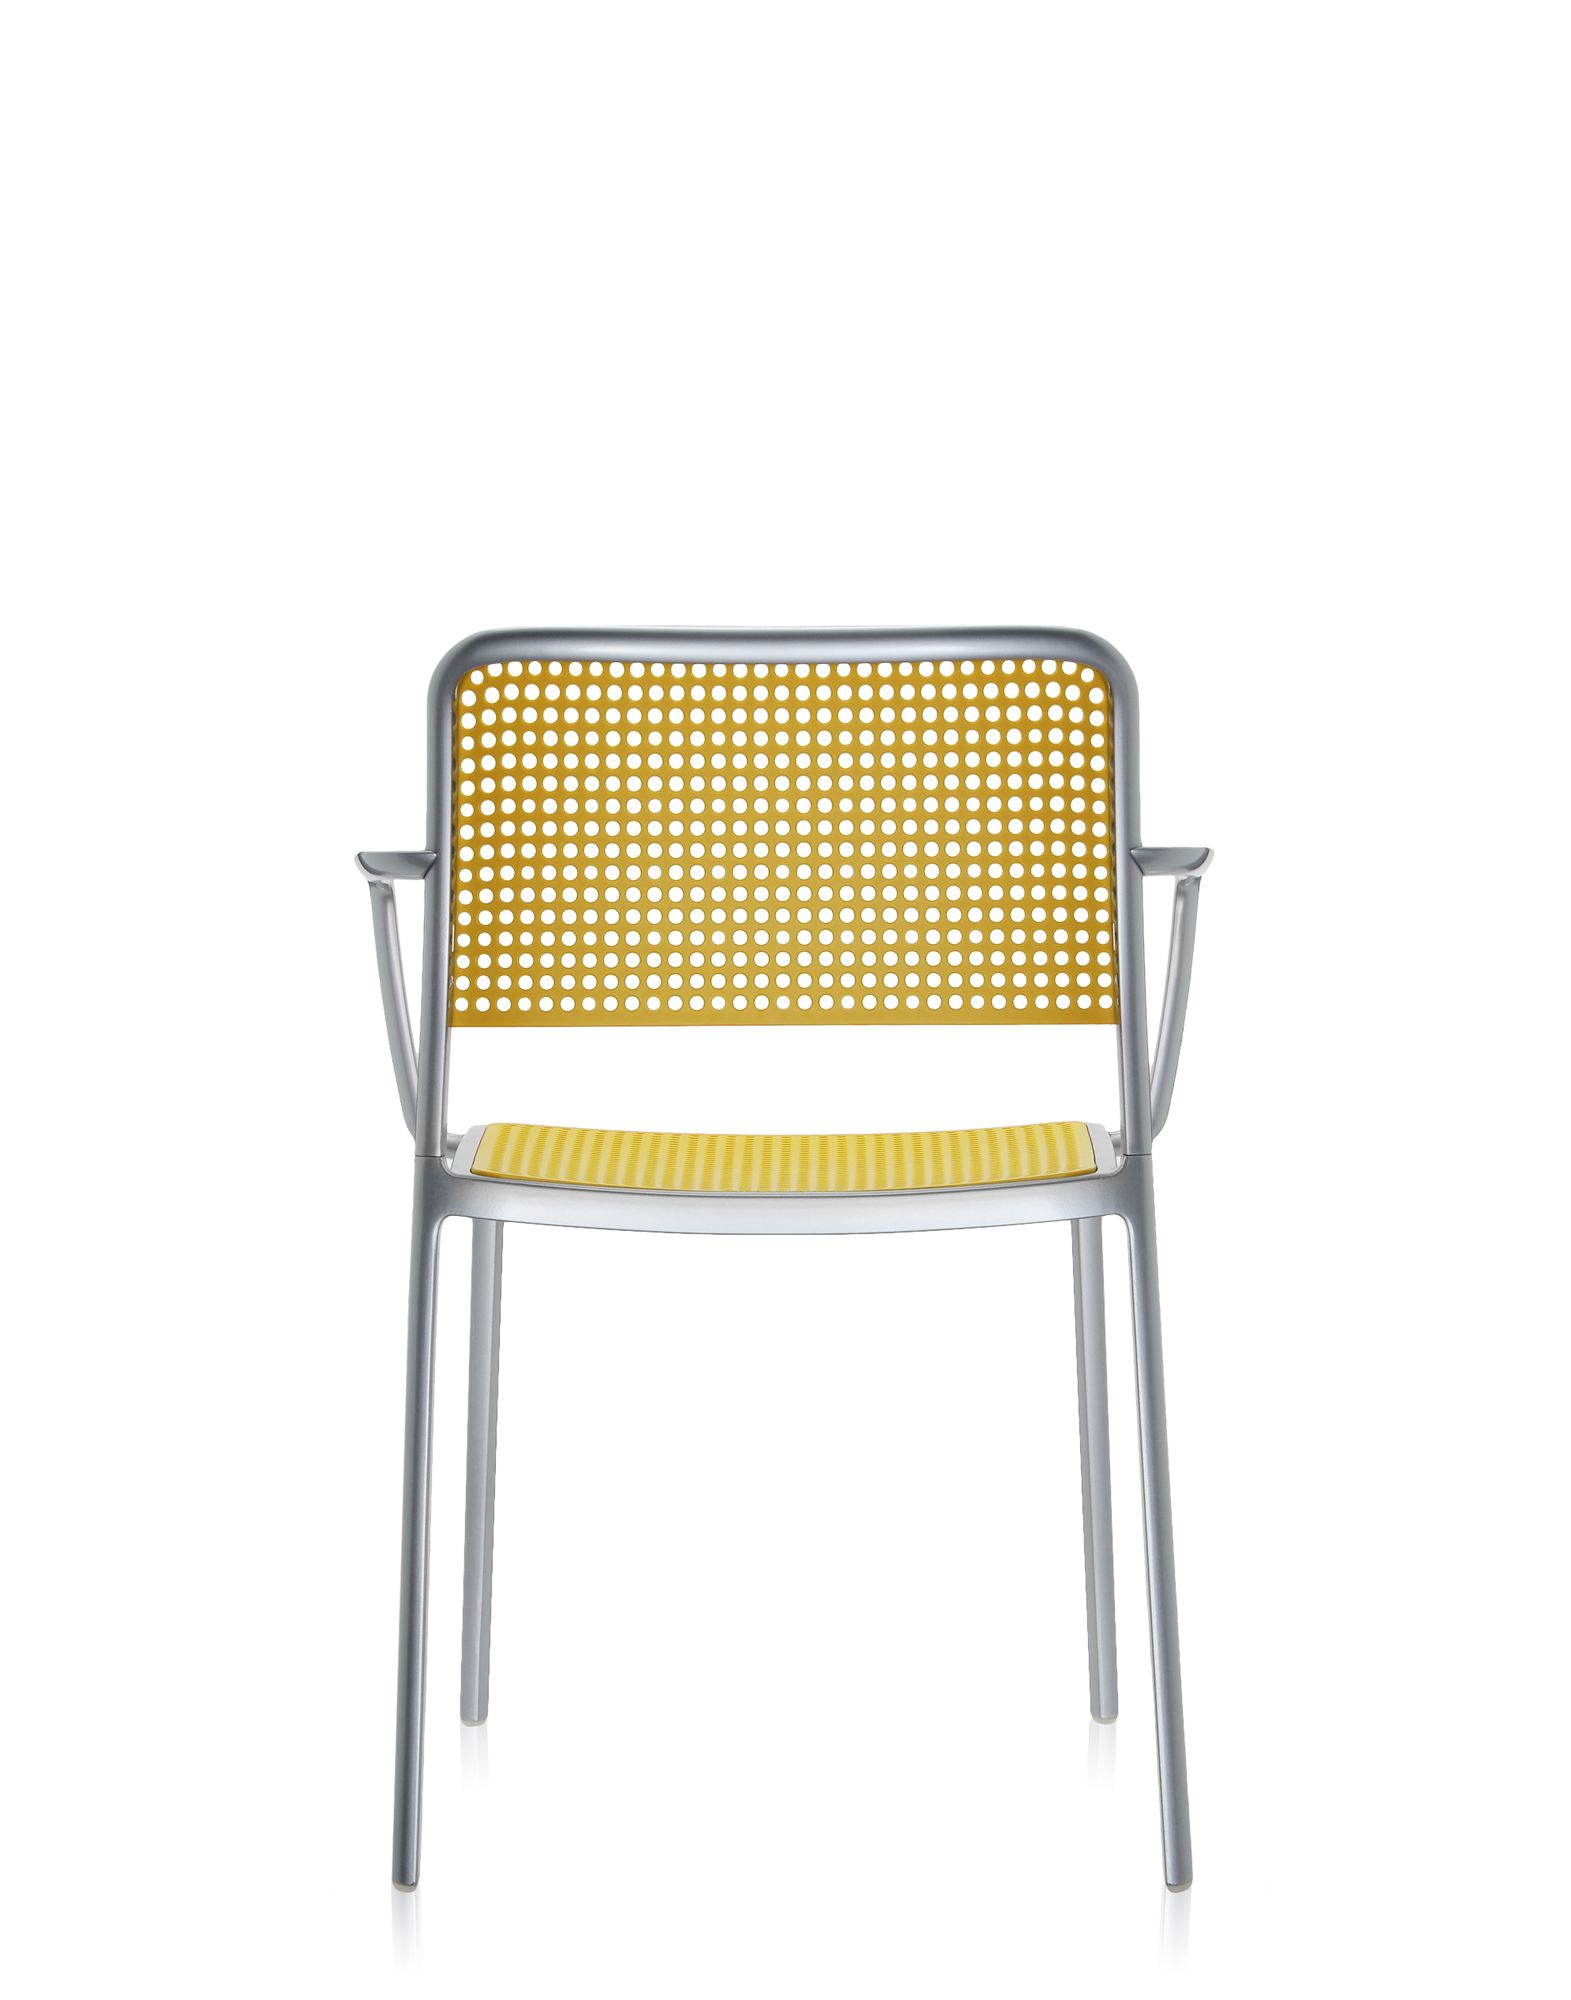 Chair Kartell Audrey yellow polished aluminum